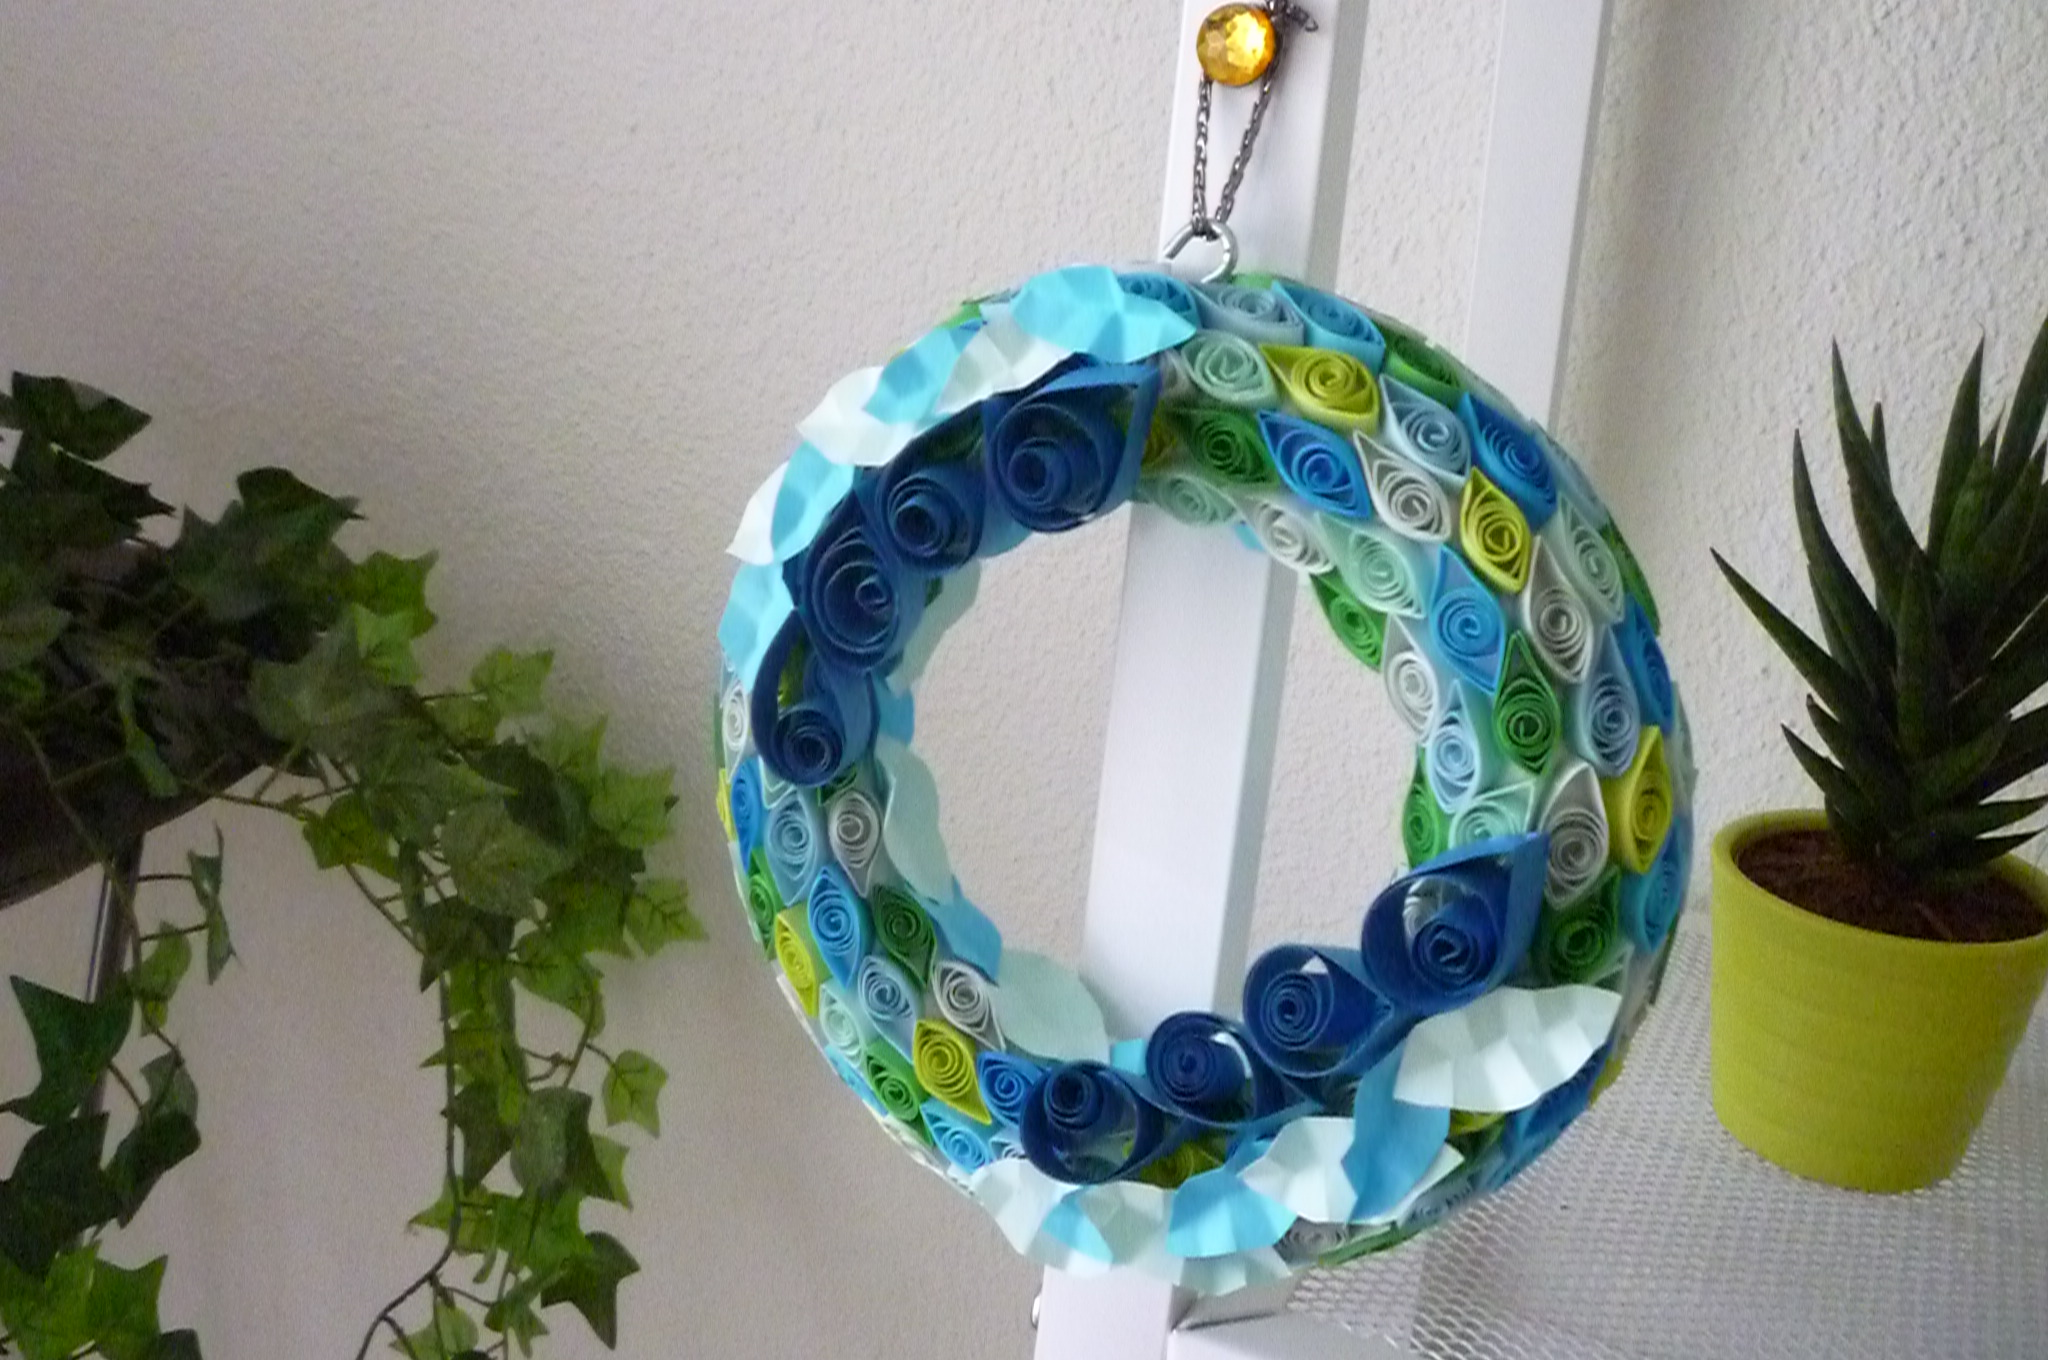 Handmade Wreath Of Paper Quilling In Fresh Color Blue By ByAzalea  Http://etsy.me/1w2Ljw5 Via @Etsy